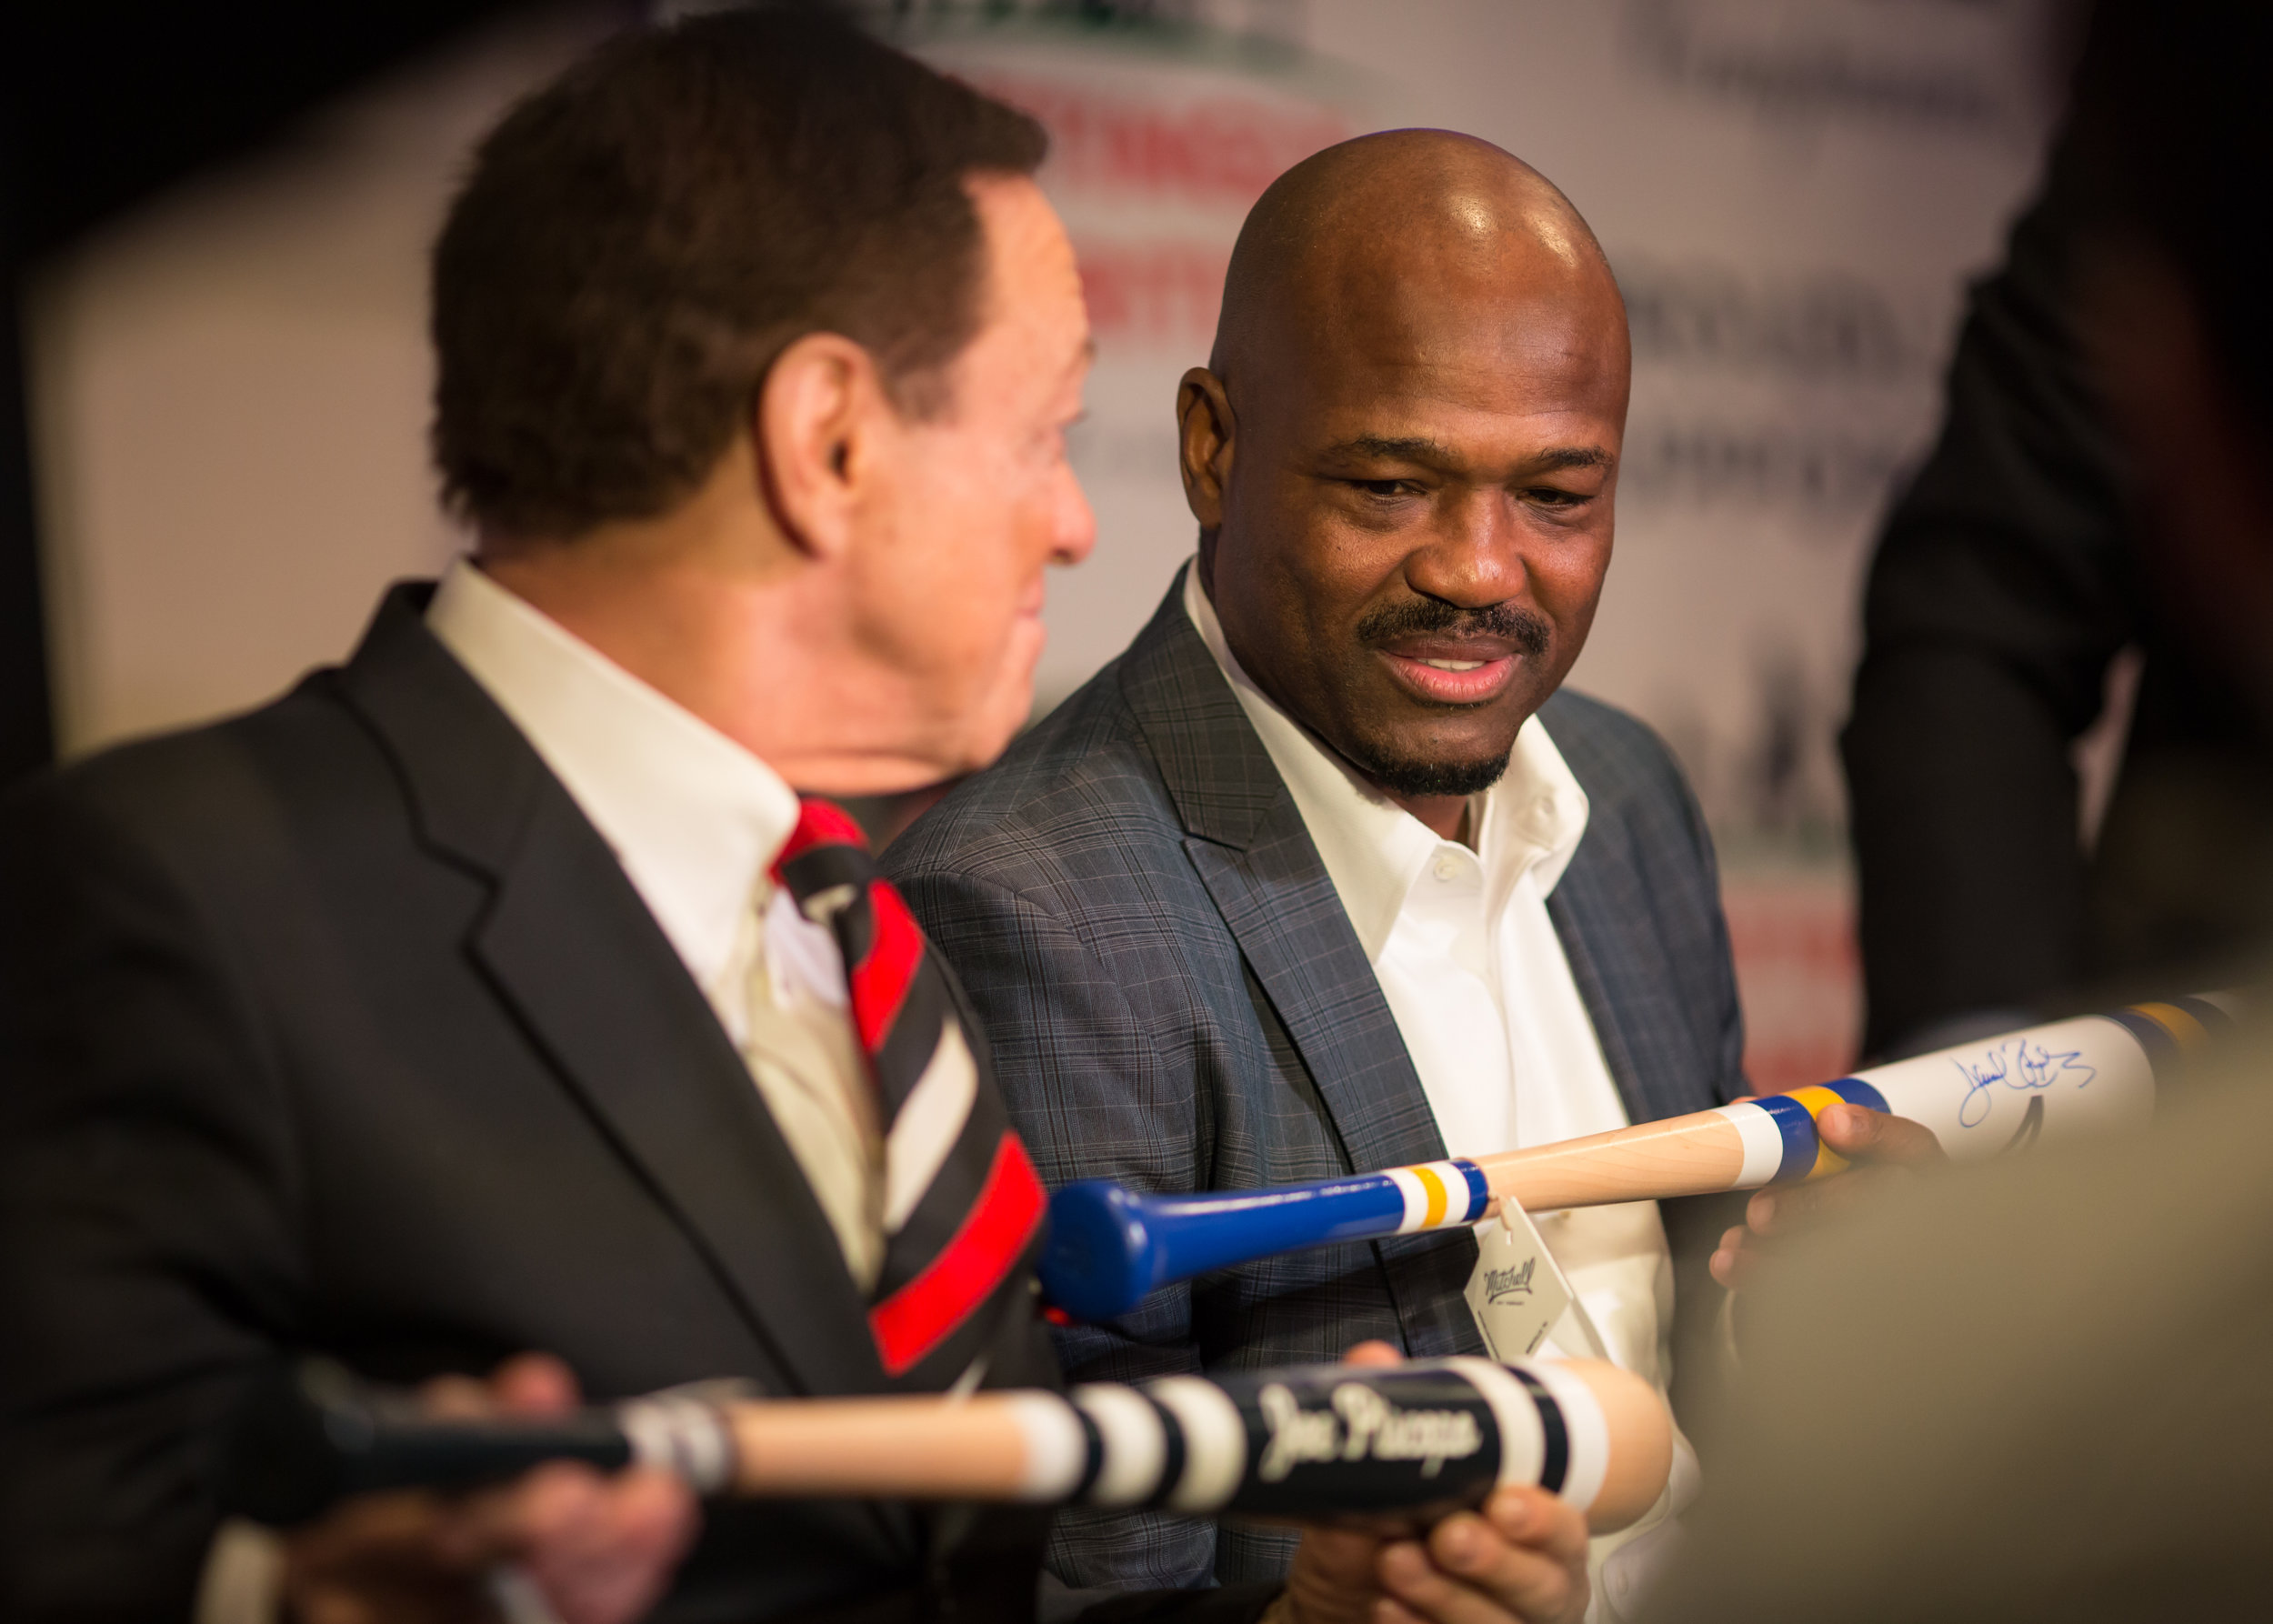 1-10-2019 Mattingly Charity Event-15.jpg